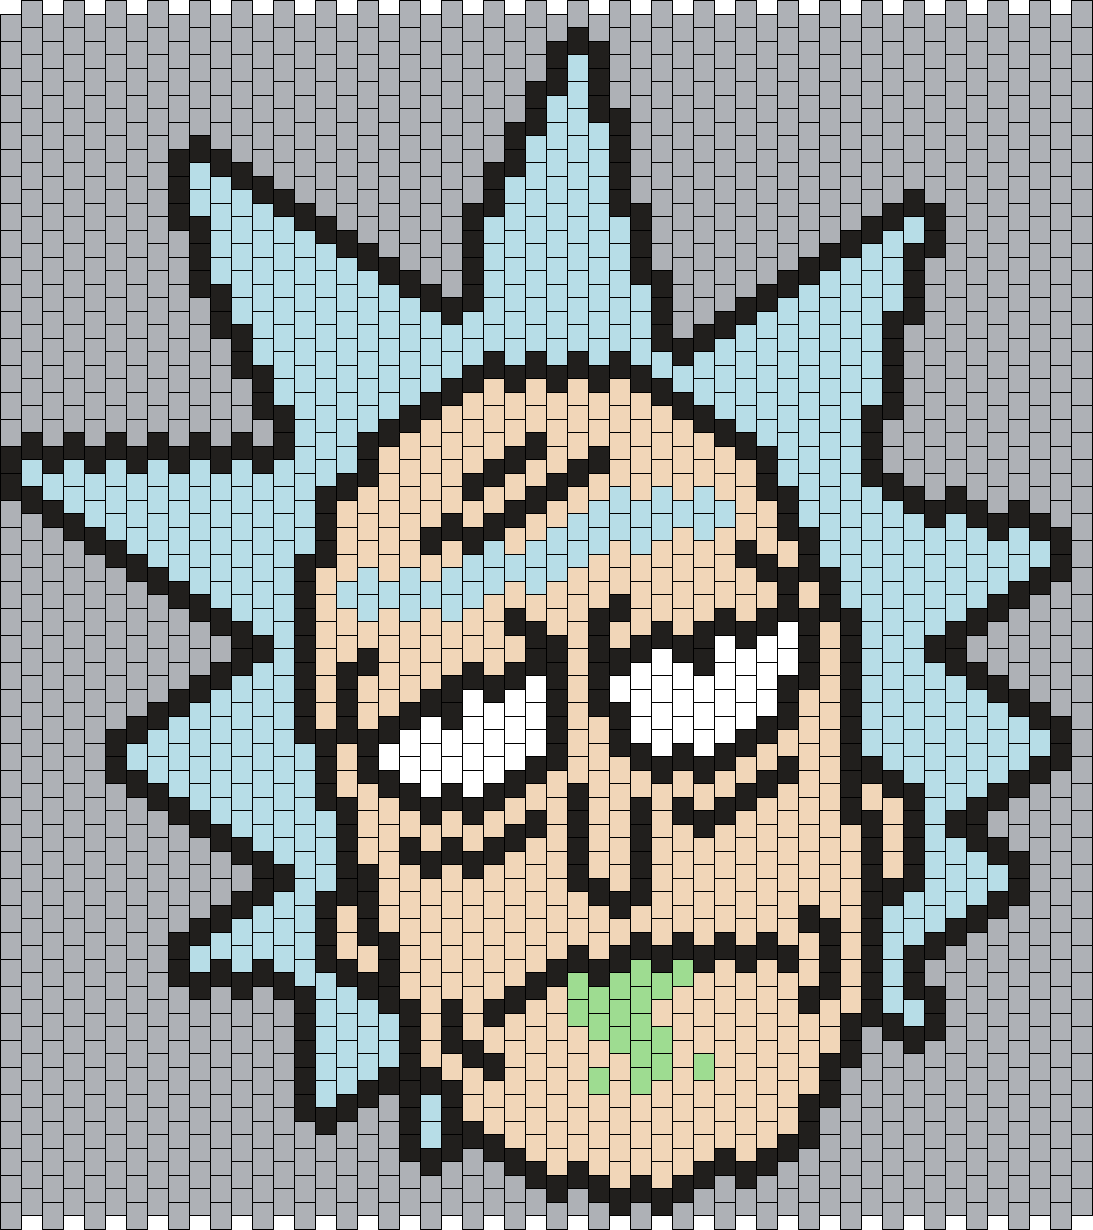 Rick_from_Rick_and_Morty_